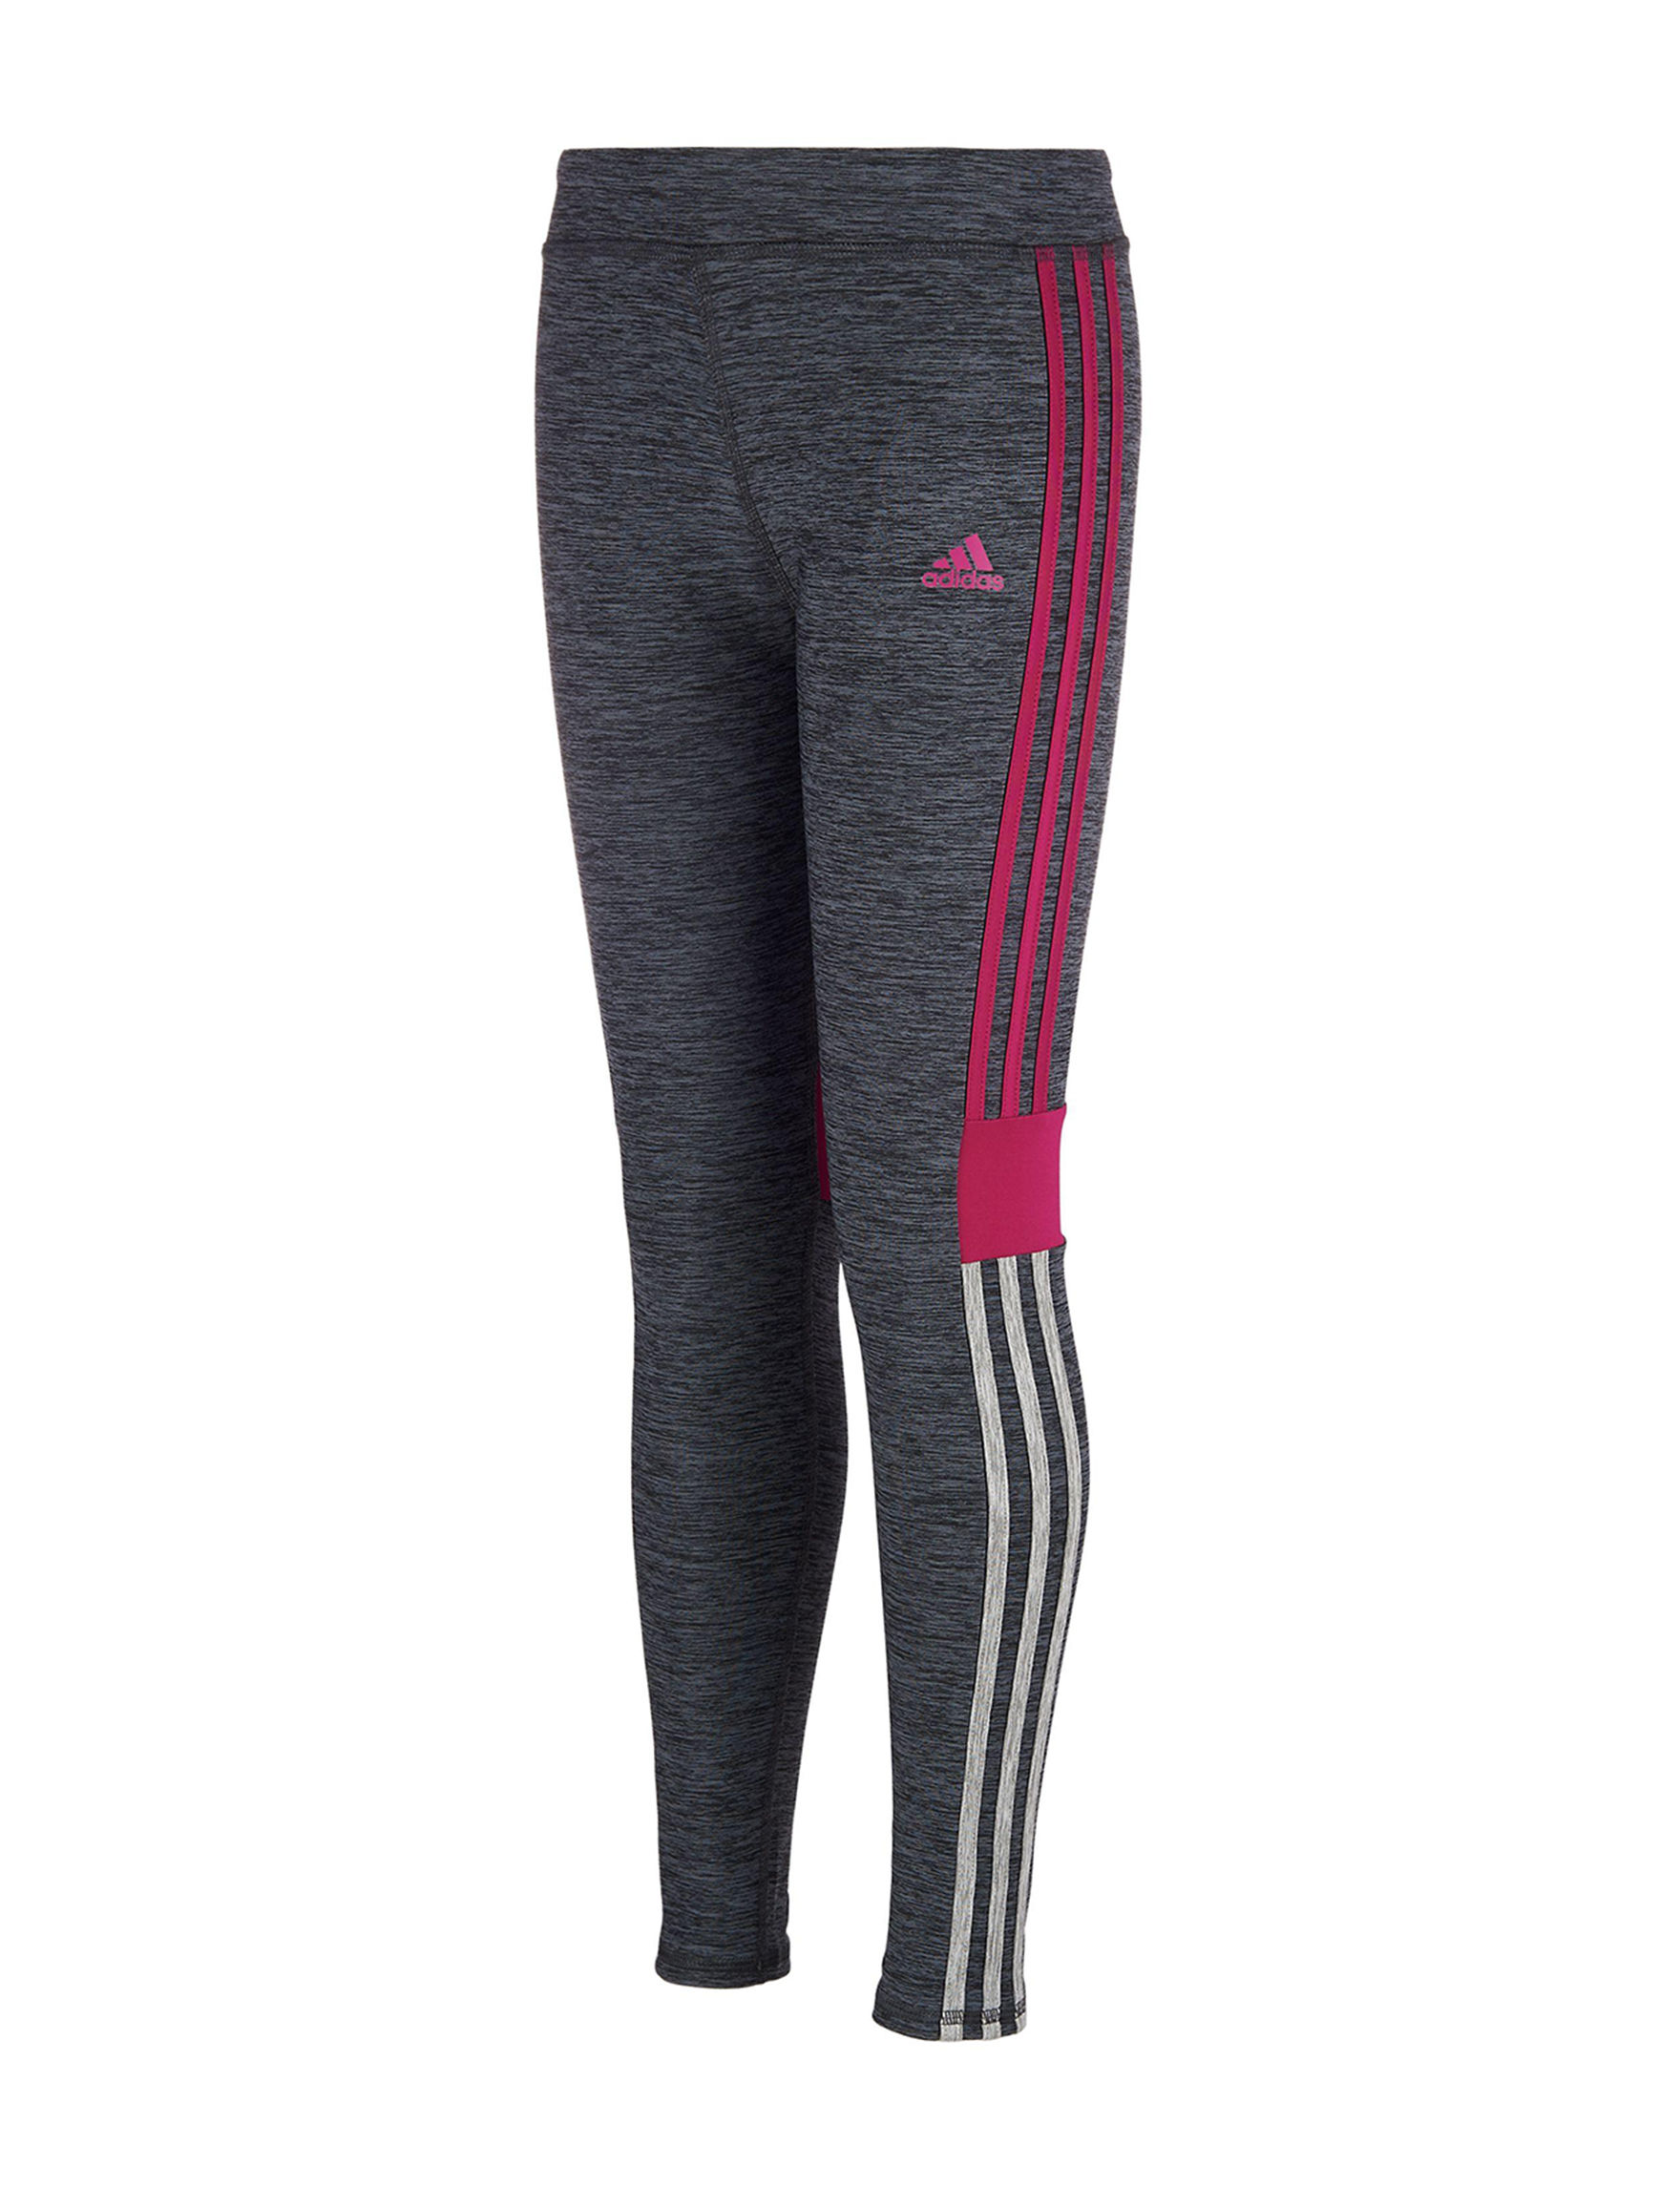 Adidas Dark Heather Grey